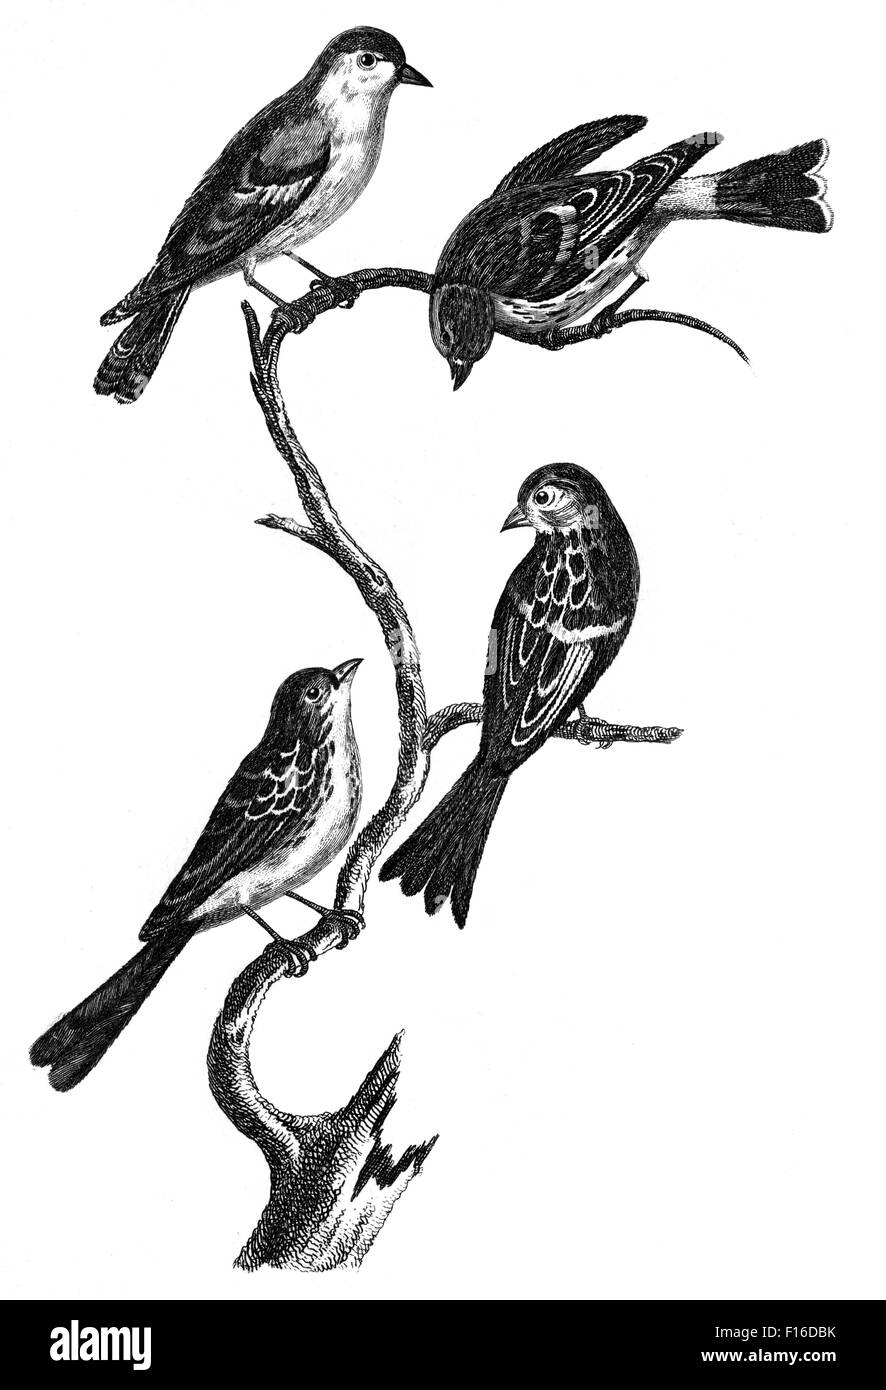 Engraved illustration titled 'Siskin FINCH M. and F Twite F. M. and F ' taken from 'British Zoology' - Stock Image